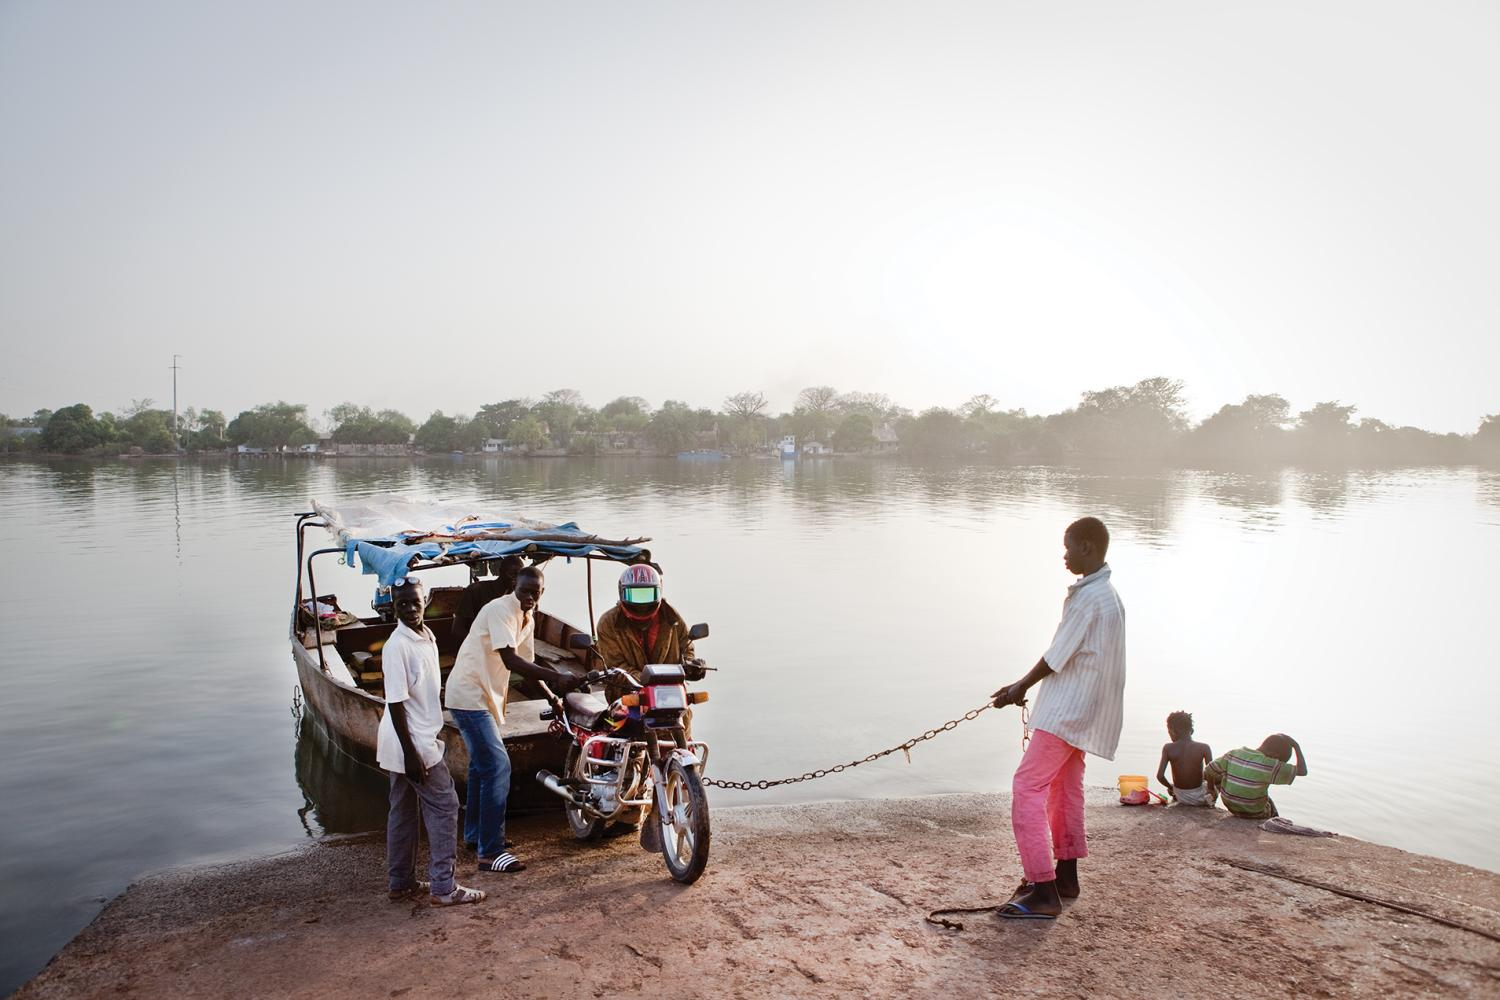 Small metal ferries, called barras, are the main way to cross the Gambia River in the upcountry regions of the Republic of Gambia. Some barras are motorized, but most are rowed with a single paddle attached to the stern.